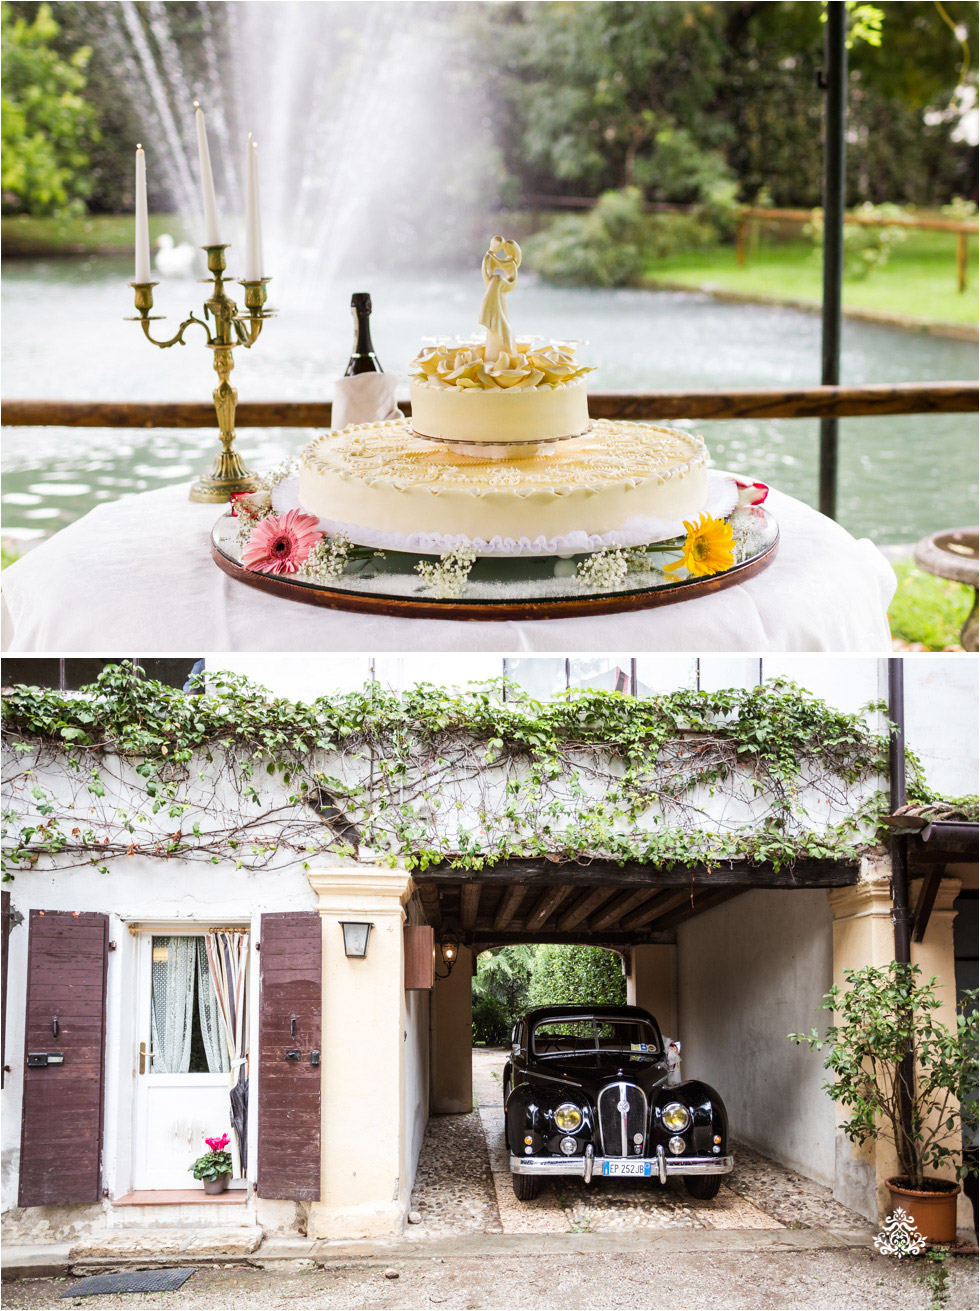 Wedding cake and bridal car at Villa Damiani in Bassano del Grappa, Italy - Blog of Nina Hintringer Photography - Wedding Photography, Wedding Reportage and Destination Weddings